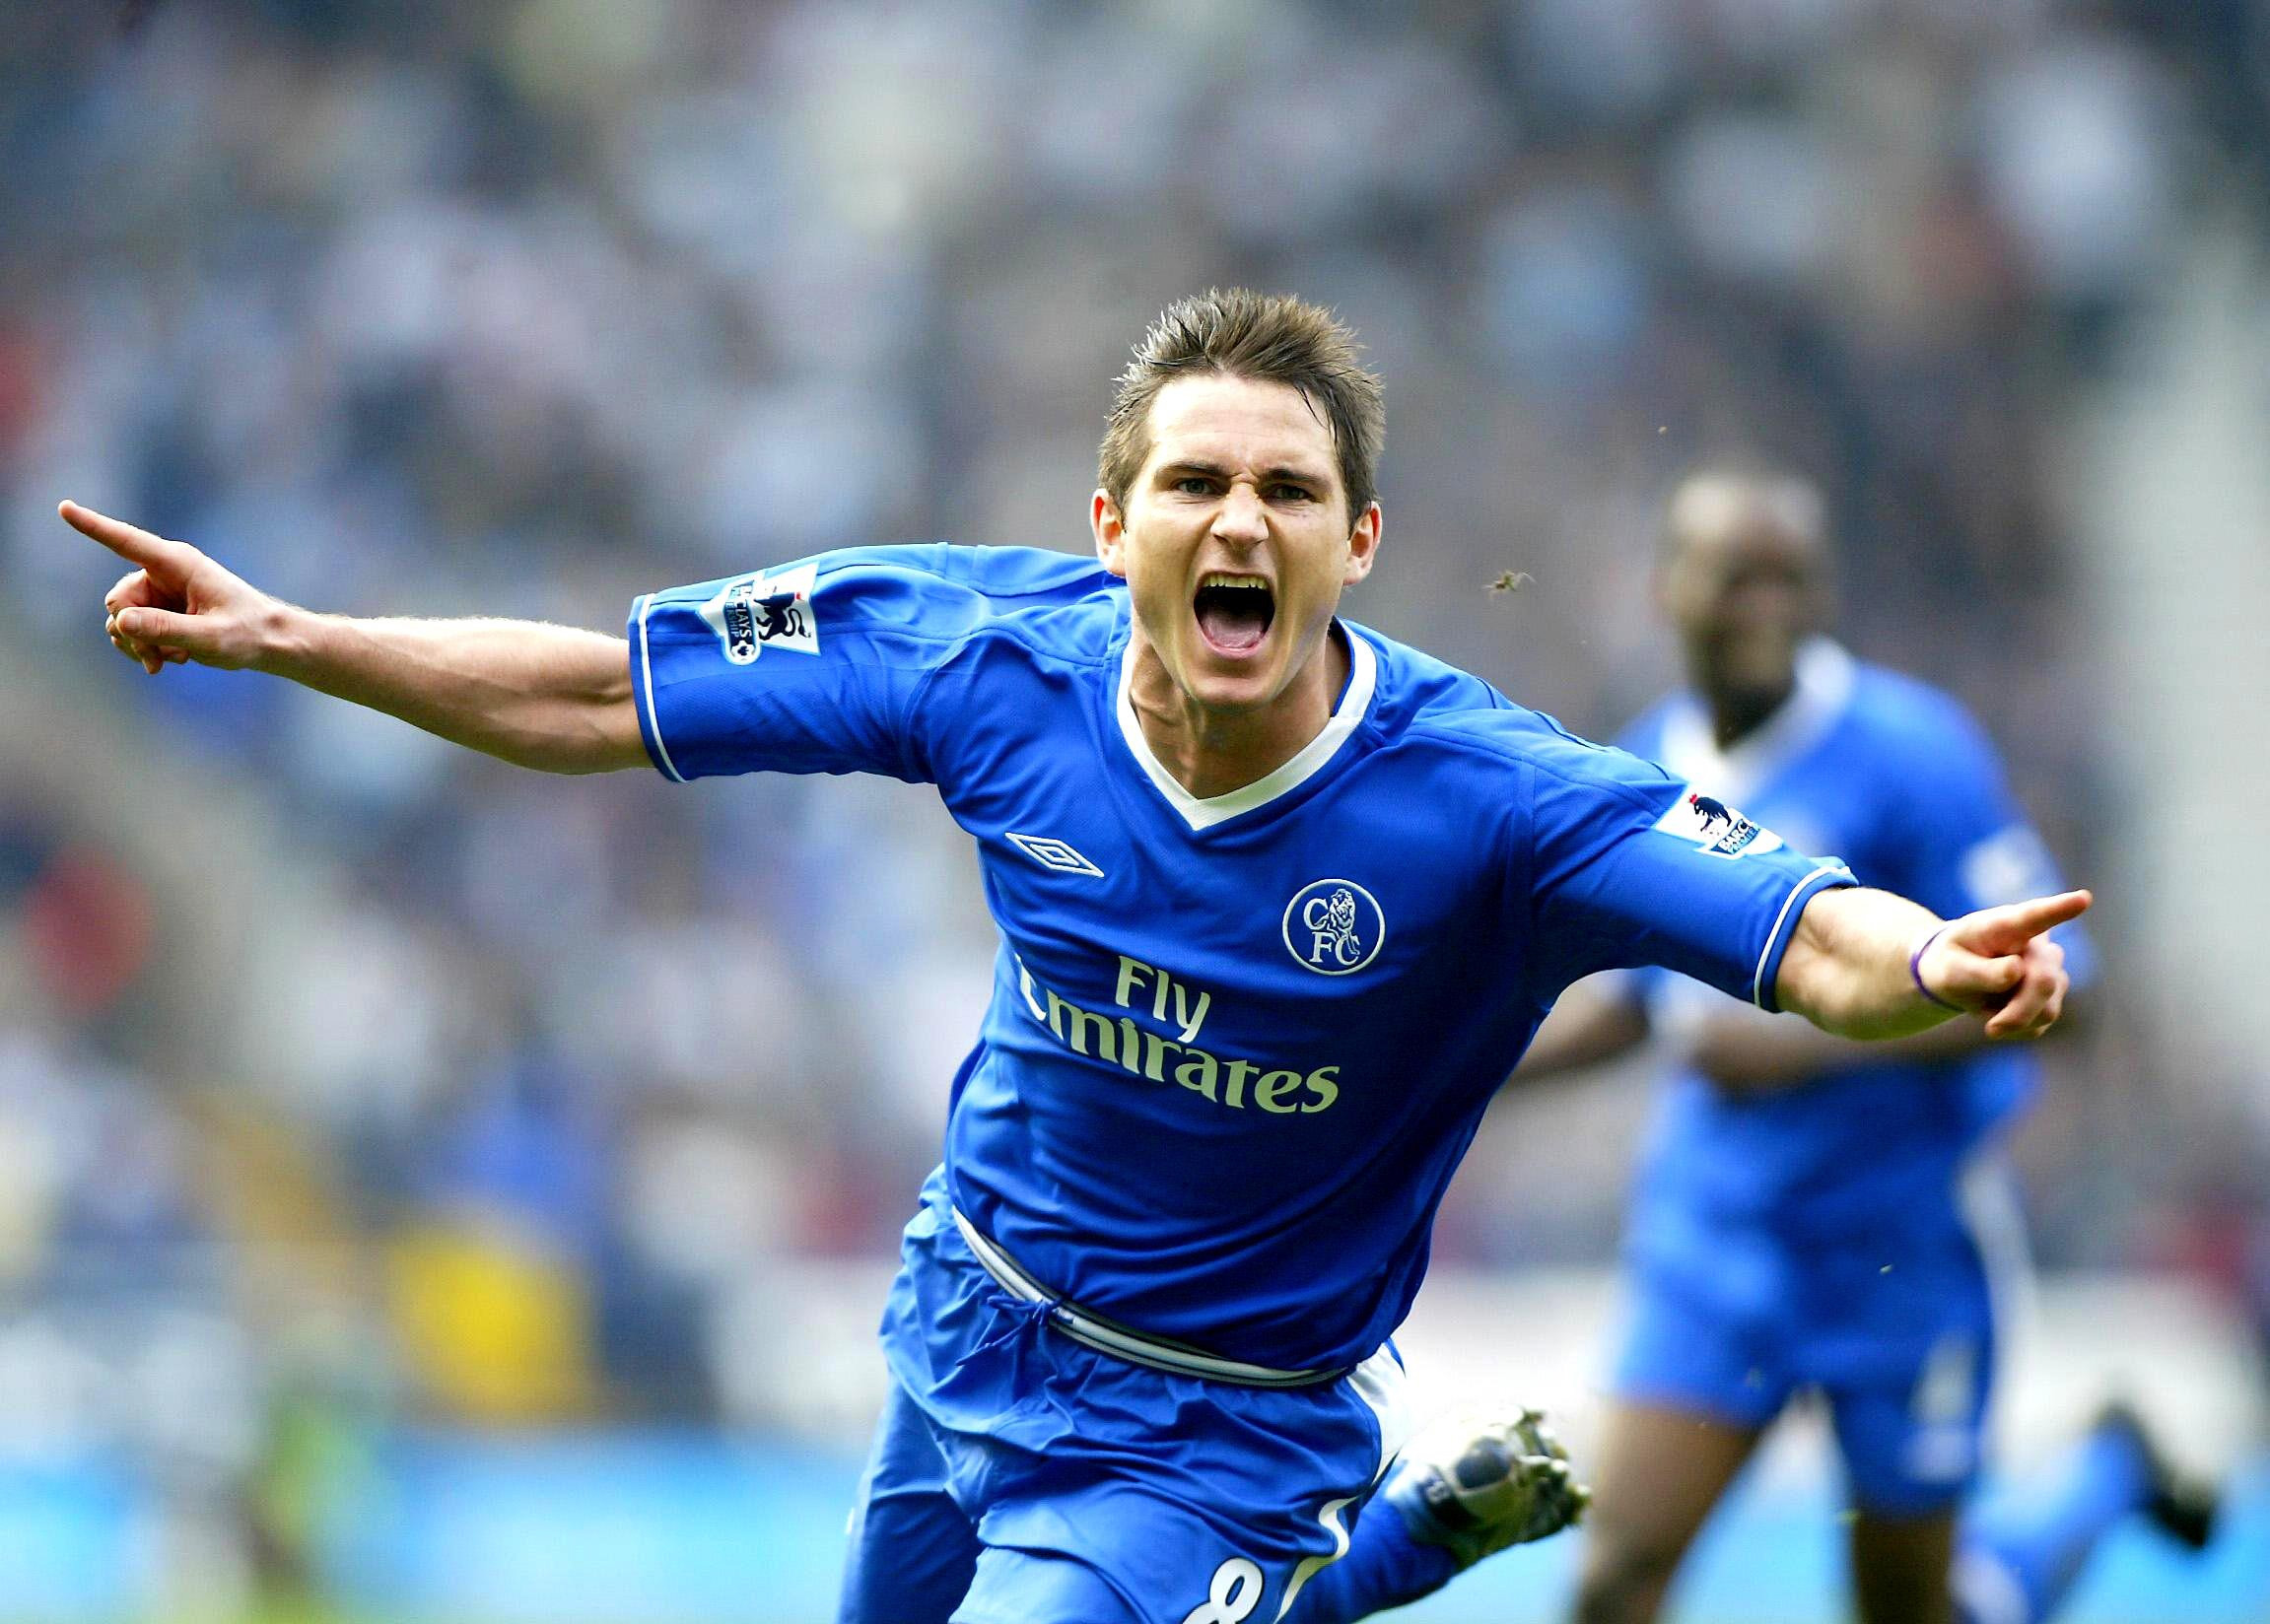 Lampard is a club legend from his playing days. Image: PA Images